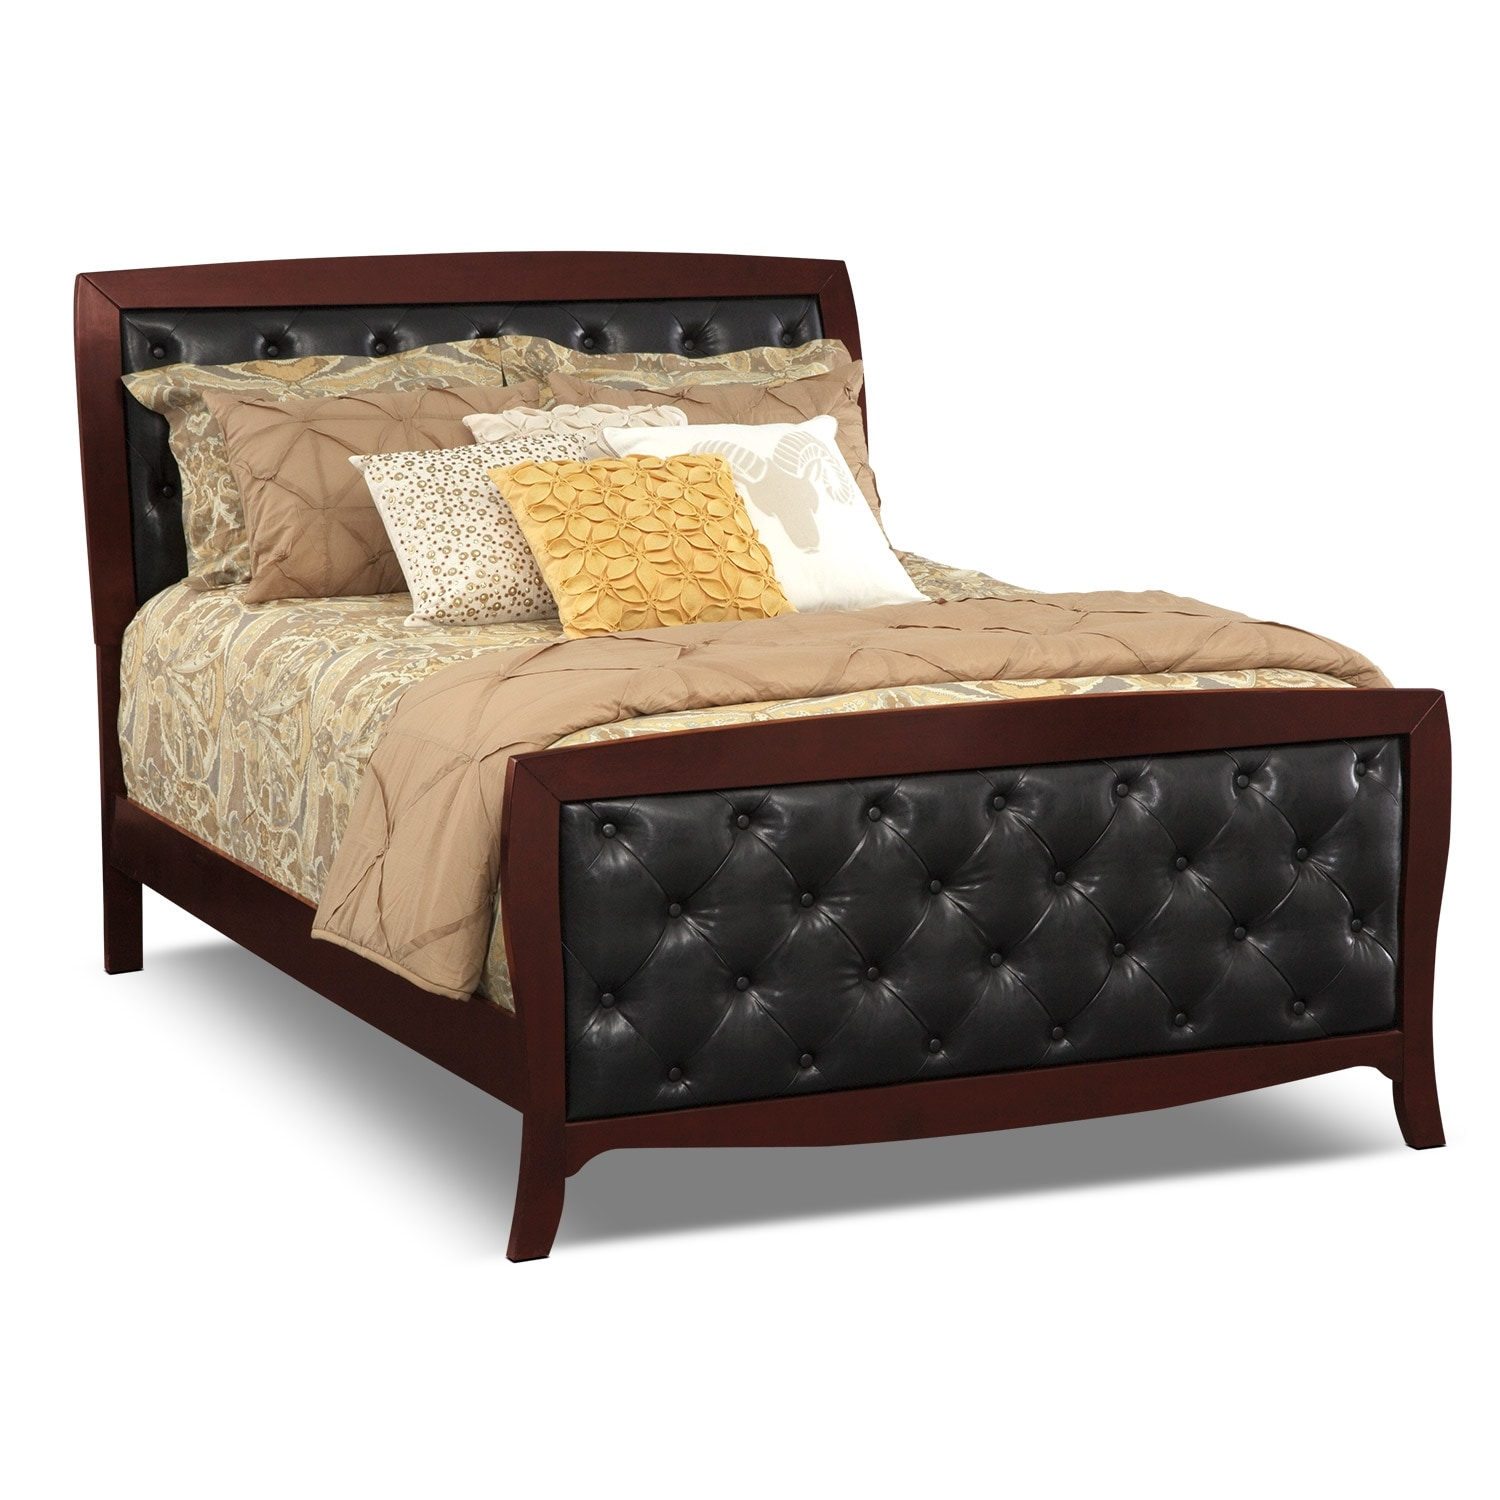 Jaden King Tufted Bed - Merlot | American Signature Furniture